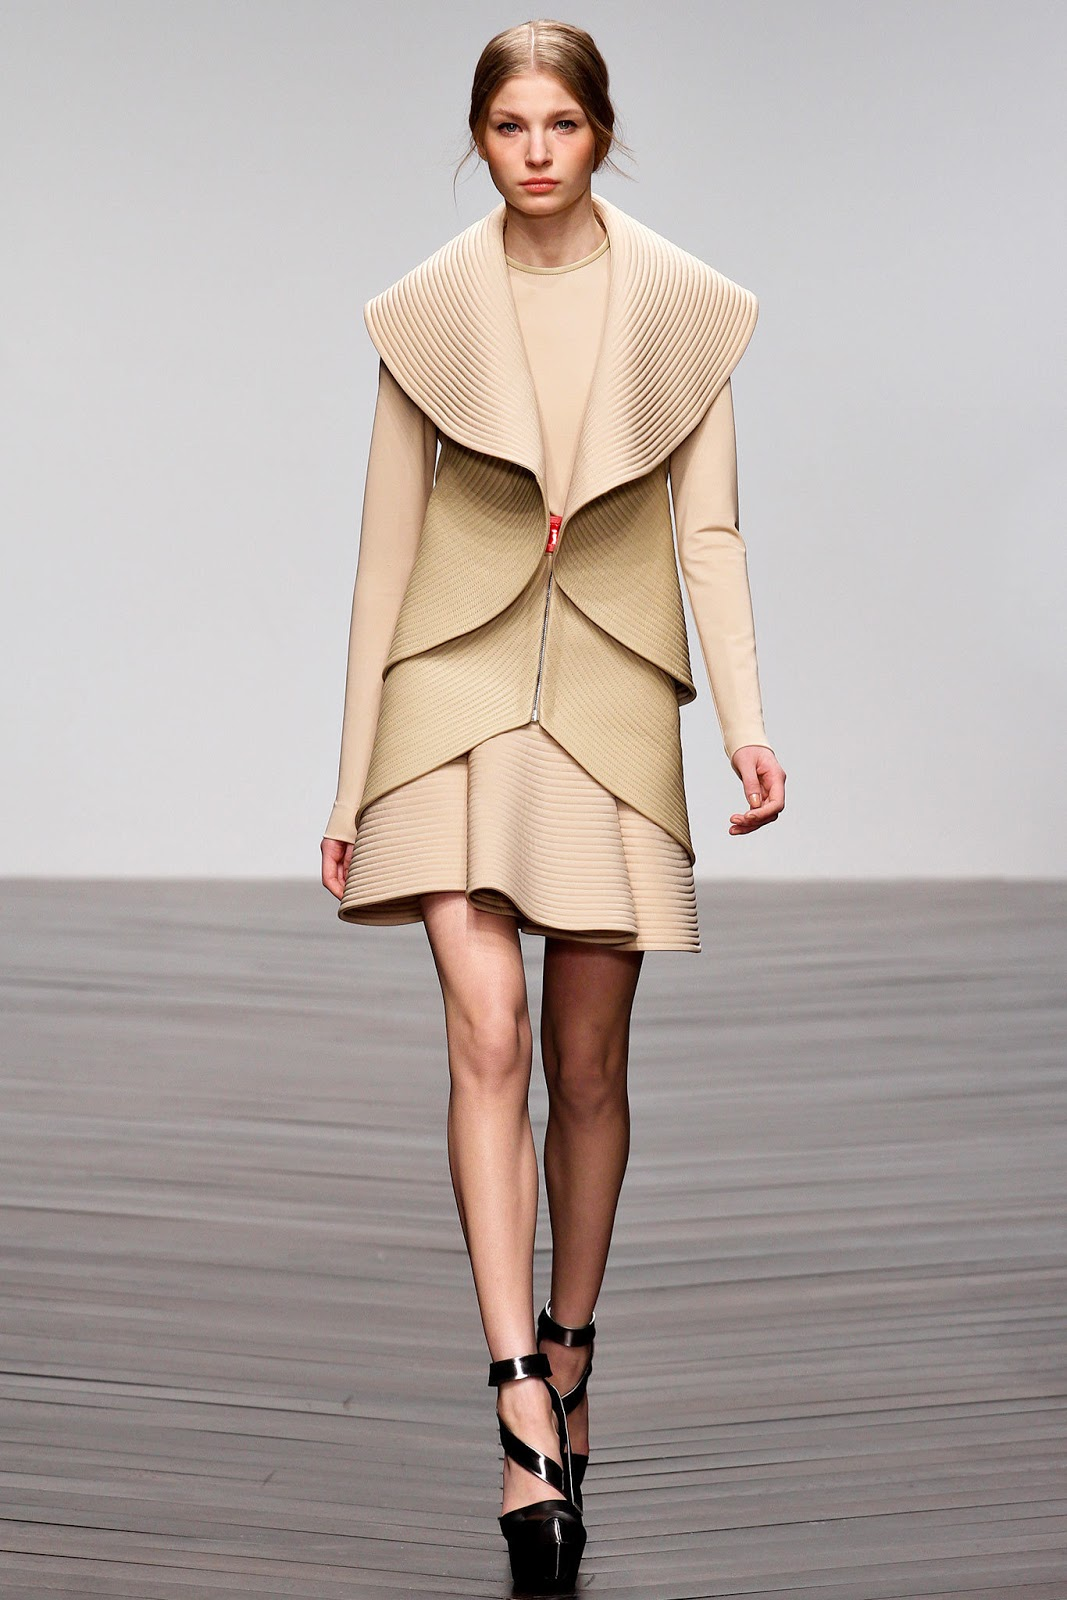 David Koma Fall/Winter 2013